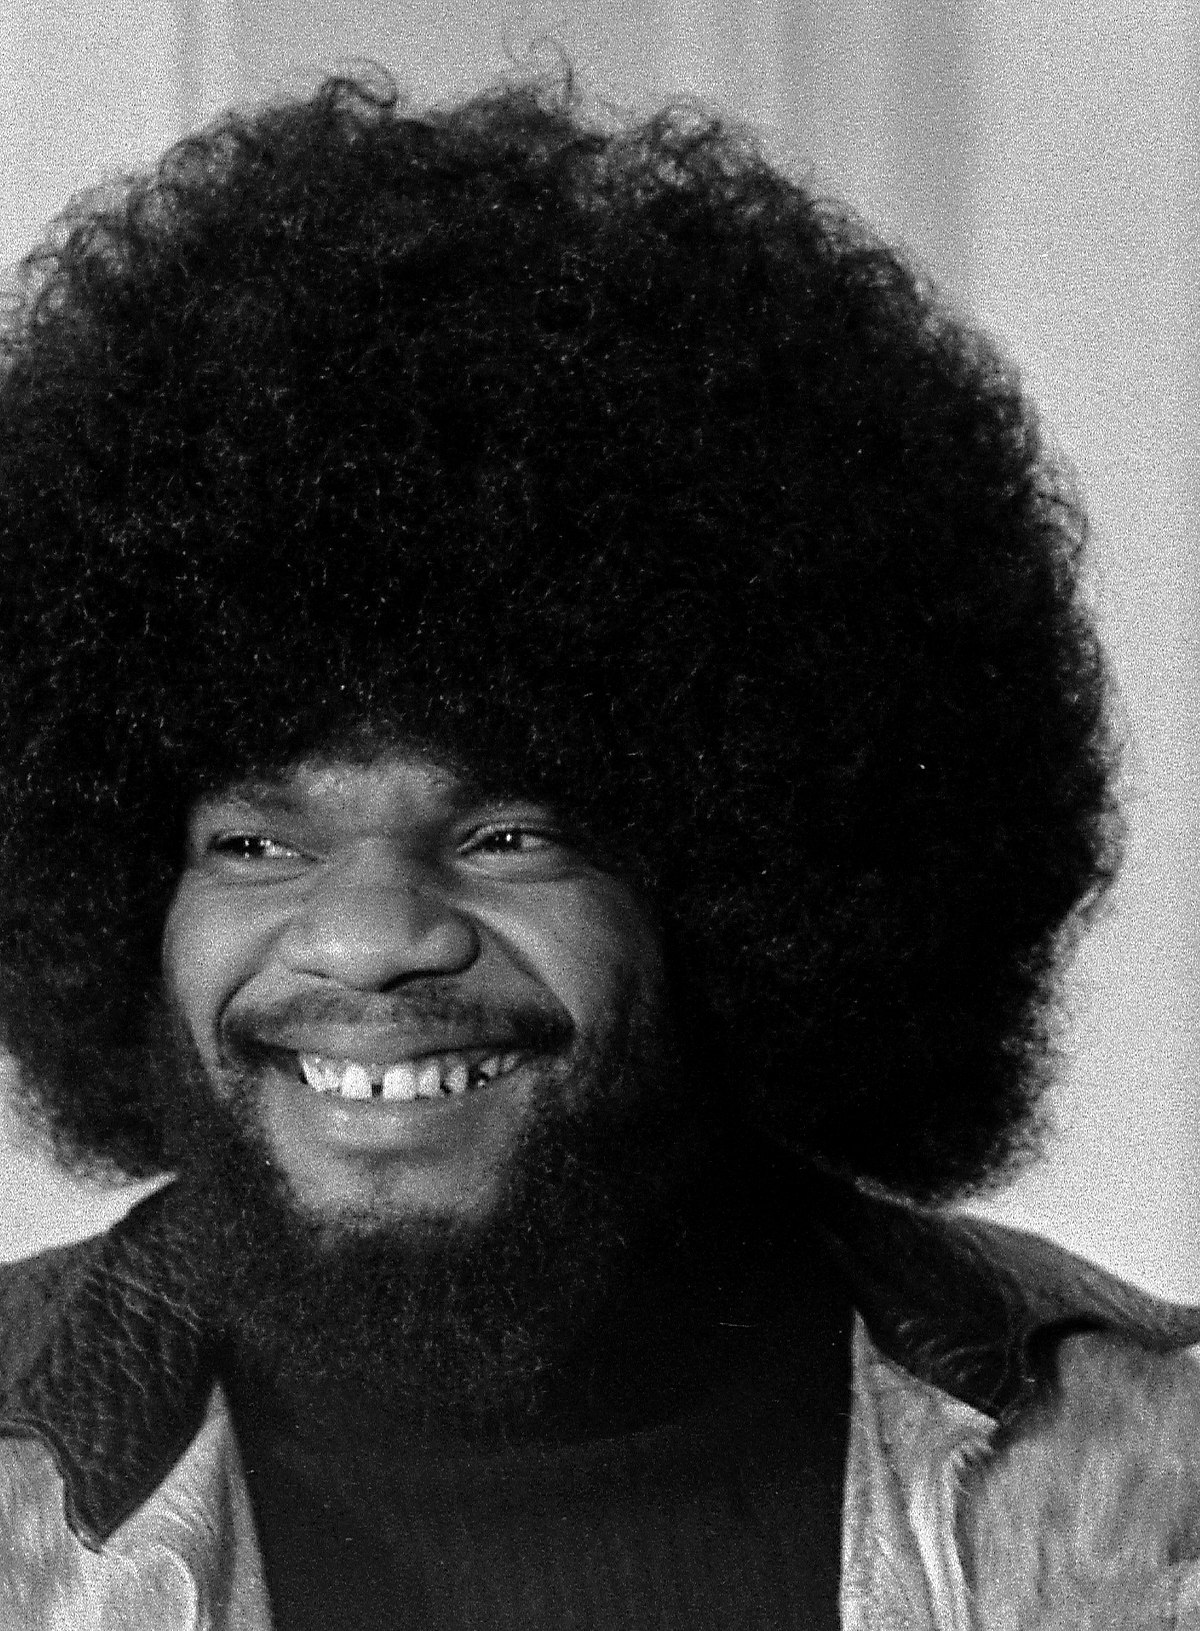 Billy Preston - Wikipedia